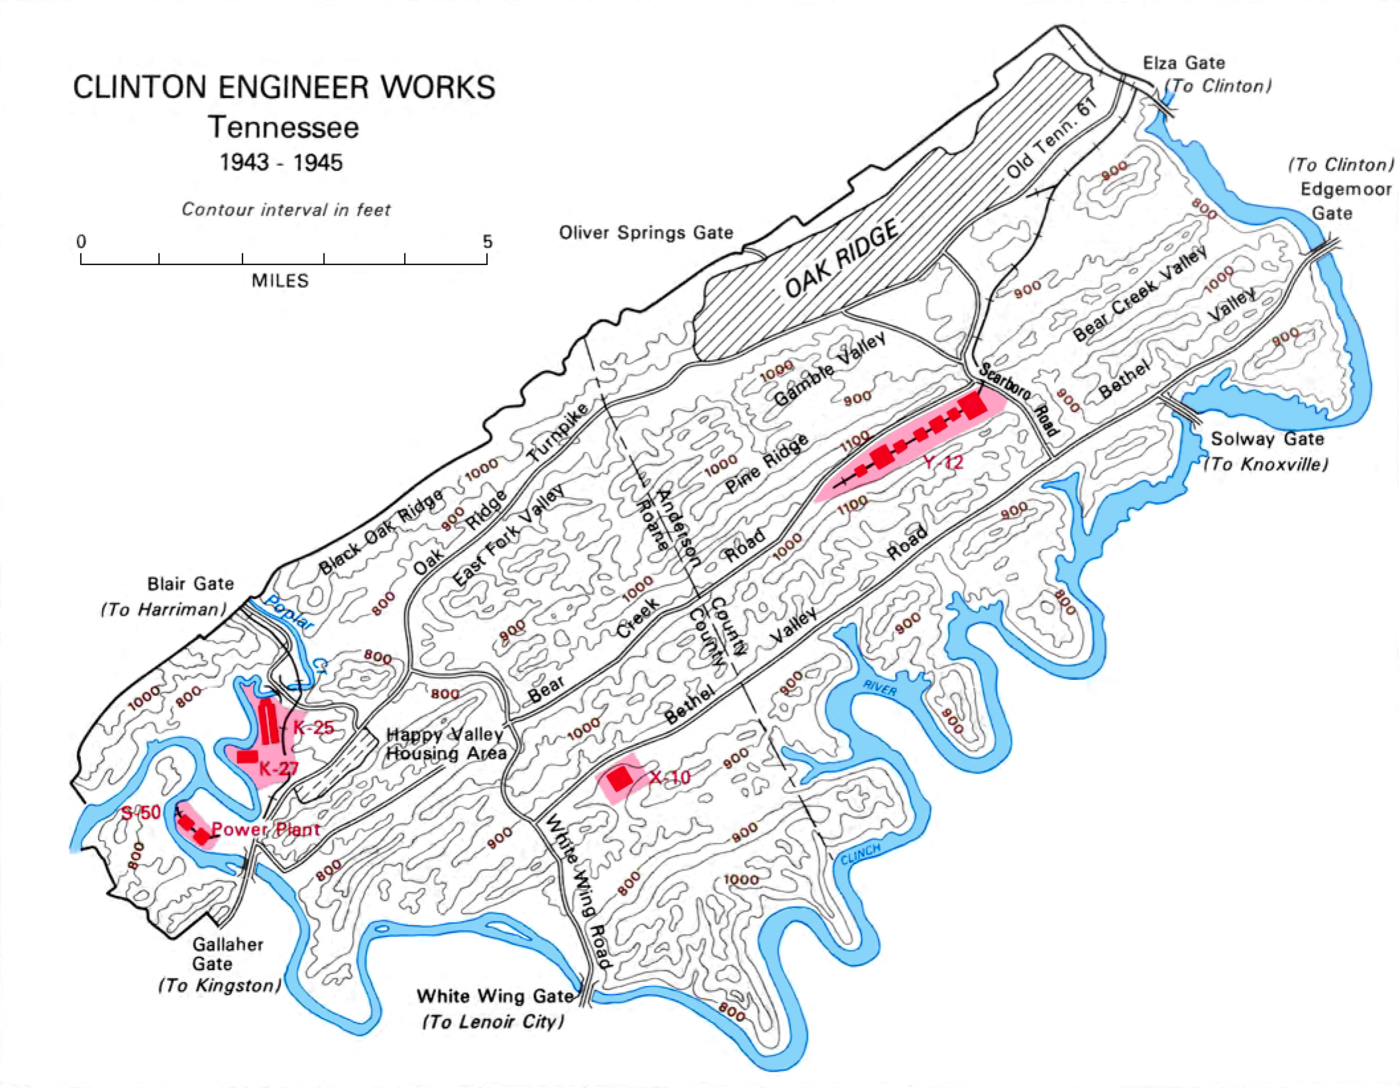 Oak Ridge hosted several uranium separation technologies. The Y-12 electromagnetic separation plant is in the upper right. The K-25 and K-27 gaseous diffusion plants are in the lower left, near the S-50 thermal diffusion plant. (The X-10 was for plutonium production.) Clinton Engineer Works.png